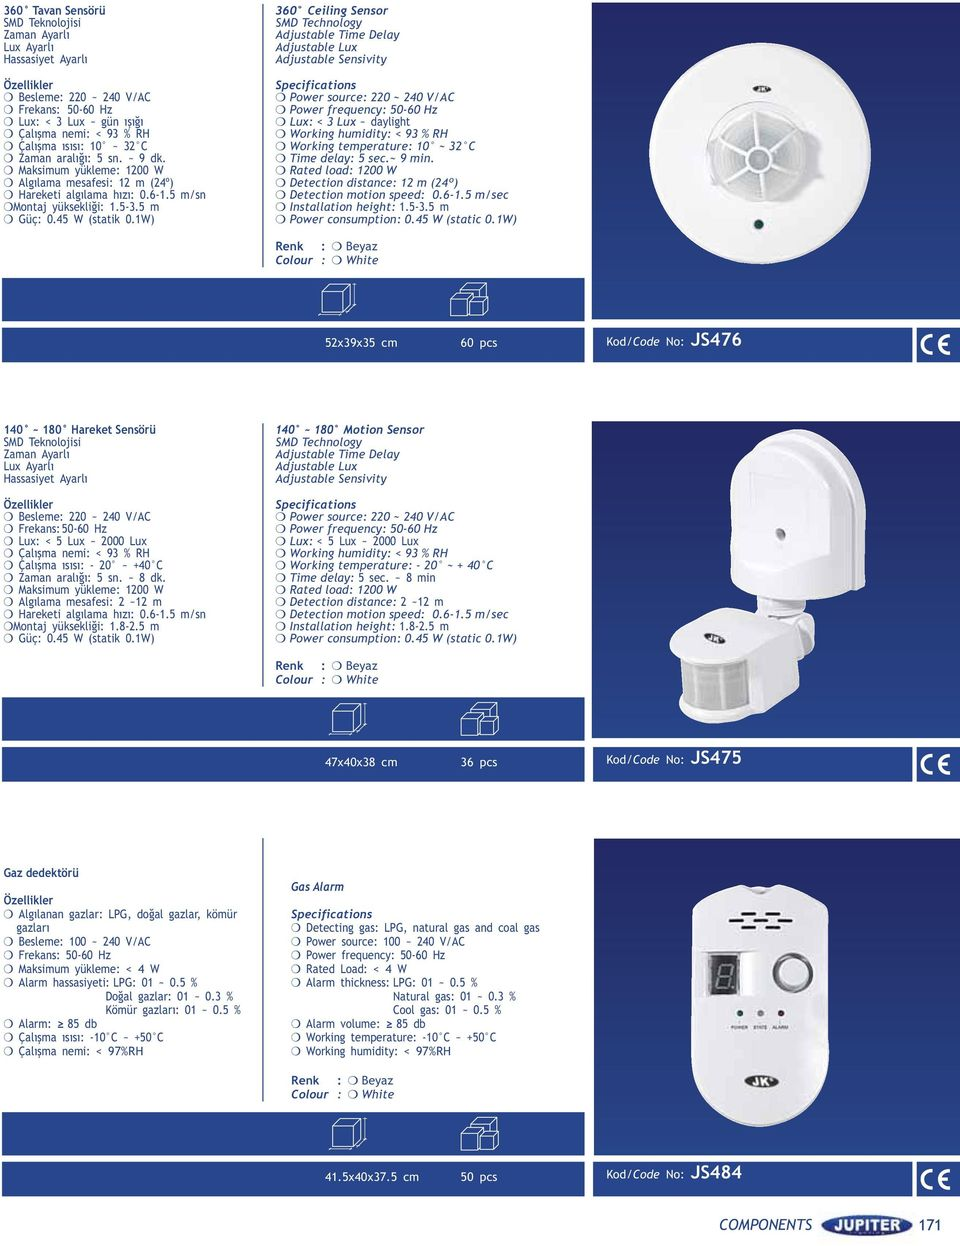 1) 360 Ceiling Sensor SMD Technology Adjustable Time Delay Adjustable Lux Adjustable Sensivity Specifications Power source: 220 ~ 240 /AC Power frequency: 50-60 Hz Lux: < 3 Lux ~ daylight orking